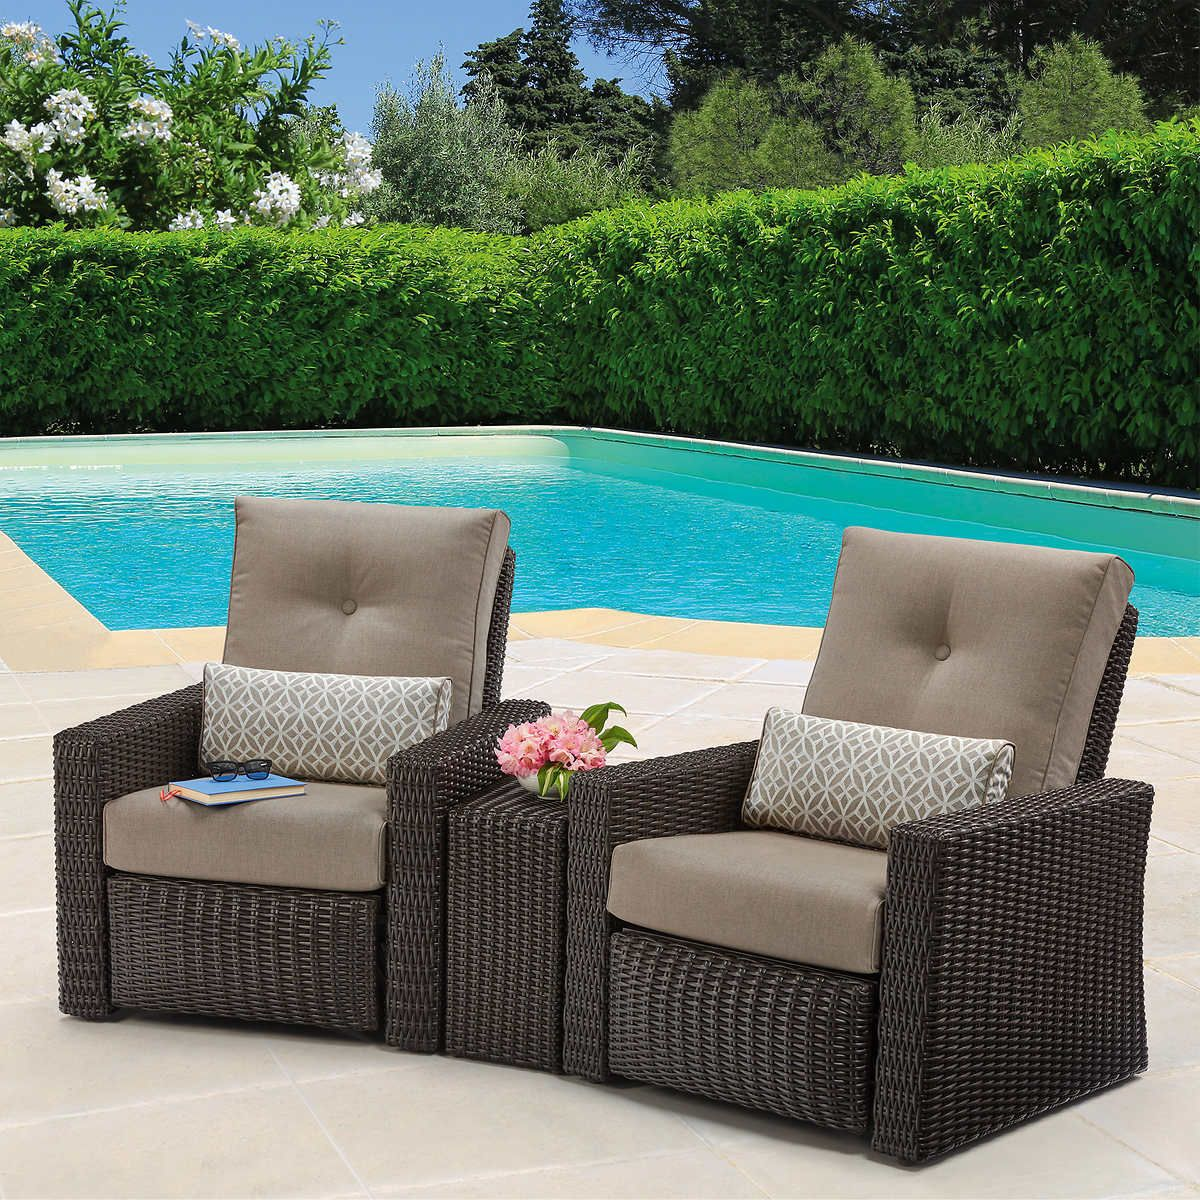 Layton 3 Piece Woven Outdoor Recliner Set Outdoor Recliner Outdoor Furniture Sets Patio Couch